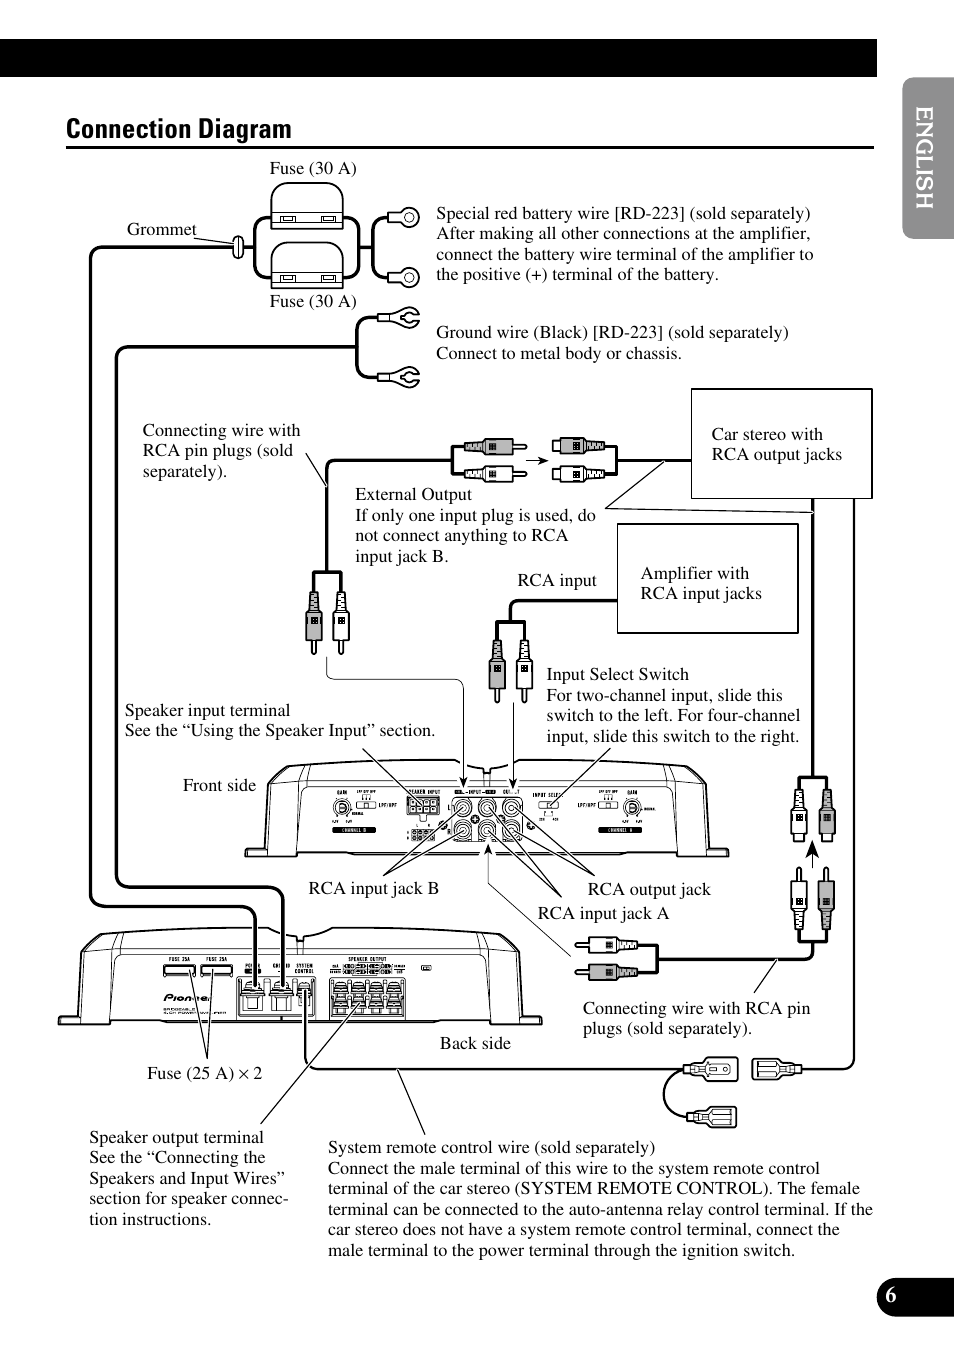 Connection Diagram Pioneer Gm 6300f User Manual Page 7 86 Rca Phone Jack Wiring